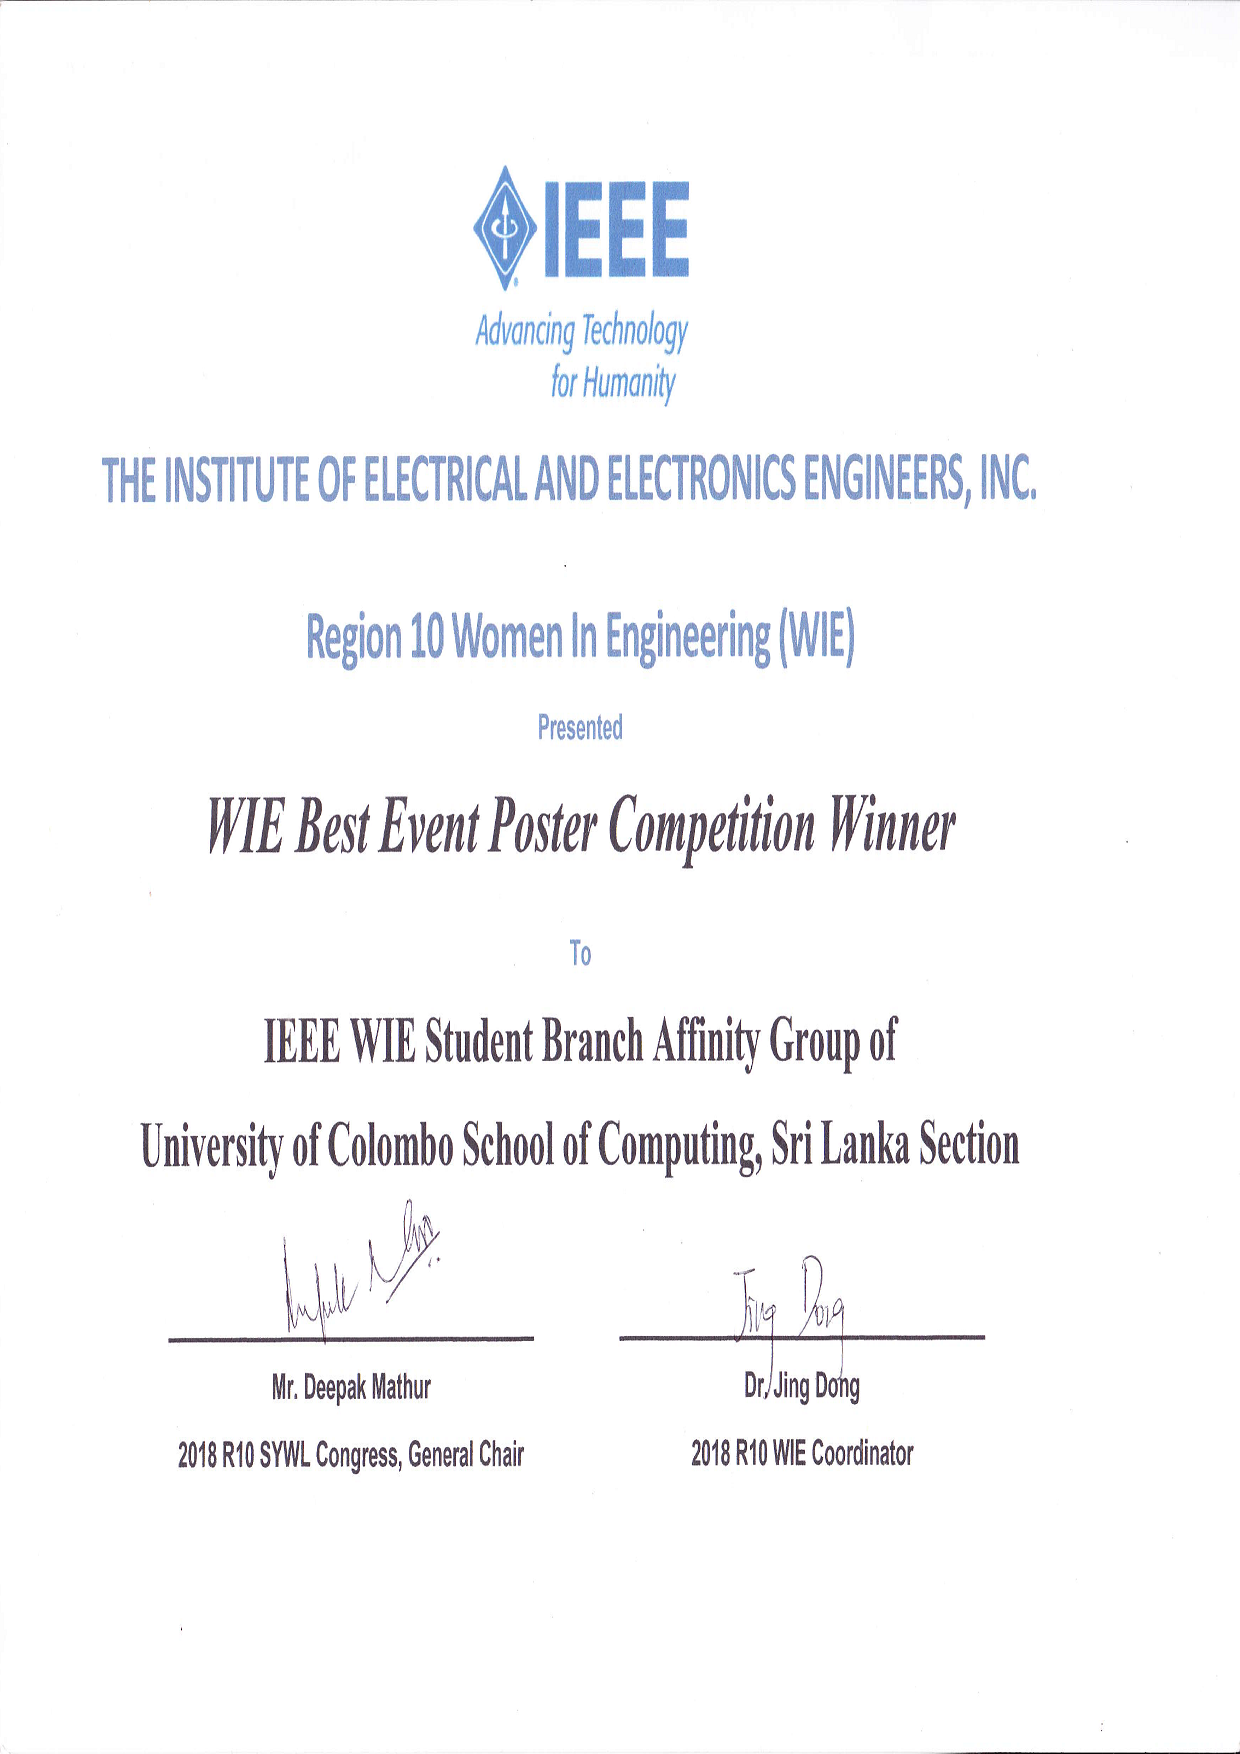 WIE Best Event Poster Competition